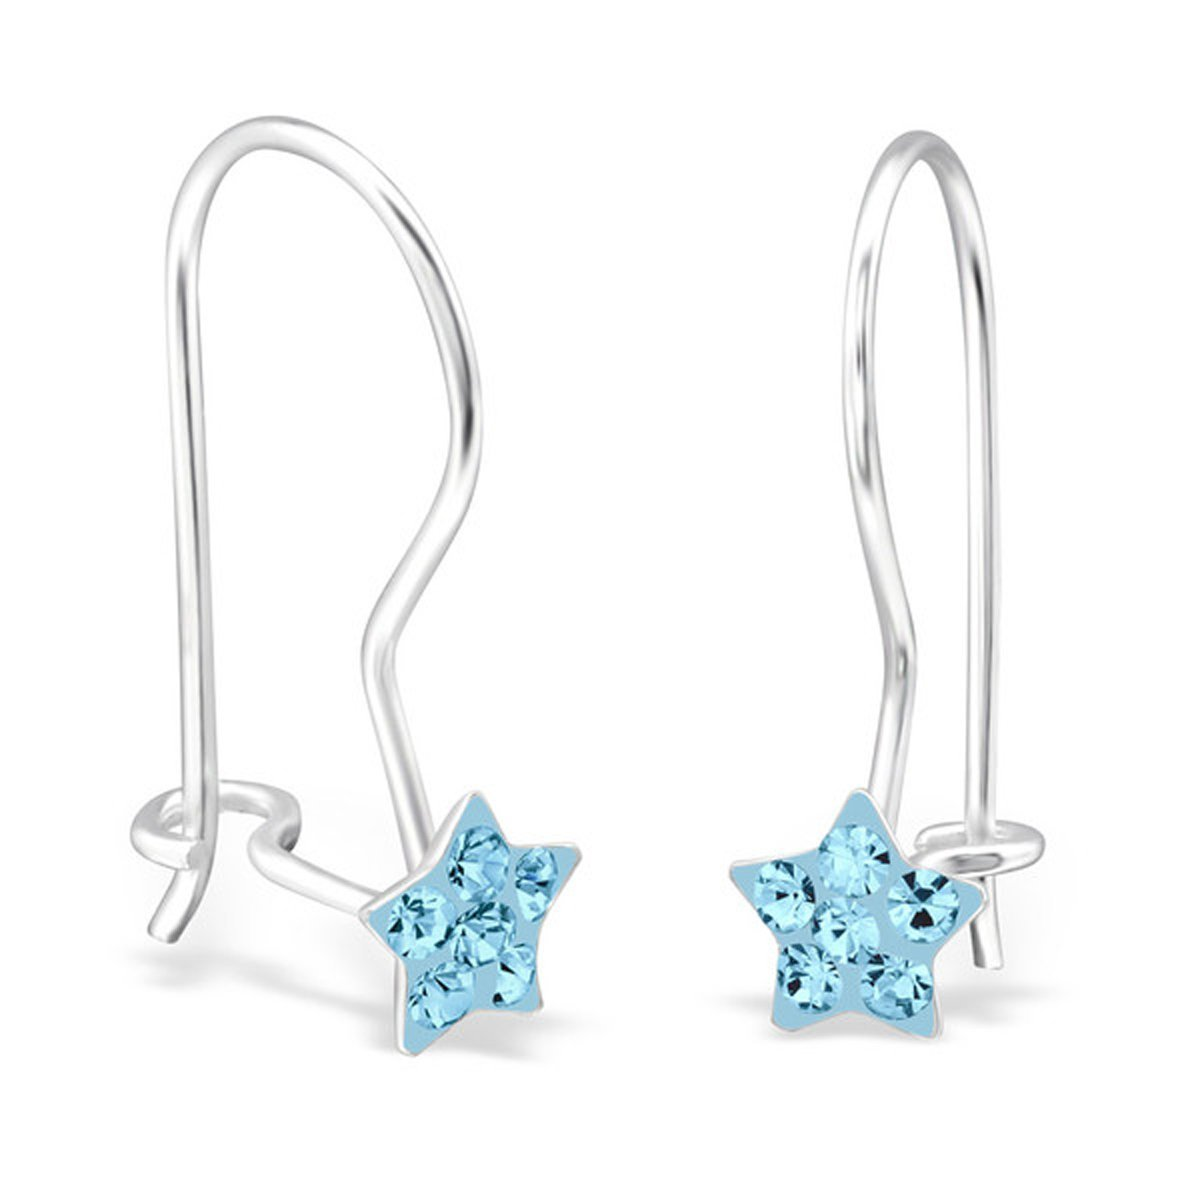 Cute Star Crystals Earrings Tiny Small Girls 925 Sterling Silver Nickle Free (E28668) (Aquamarine)